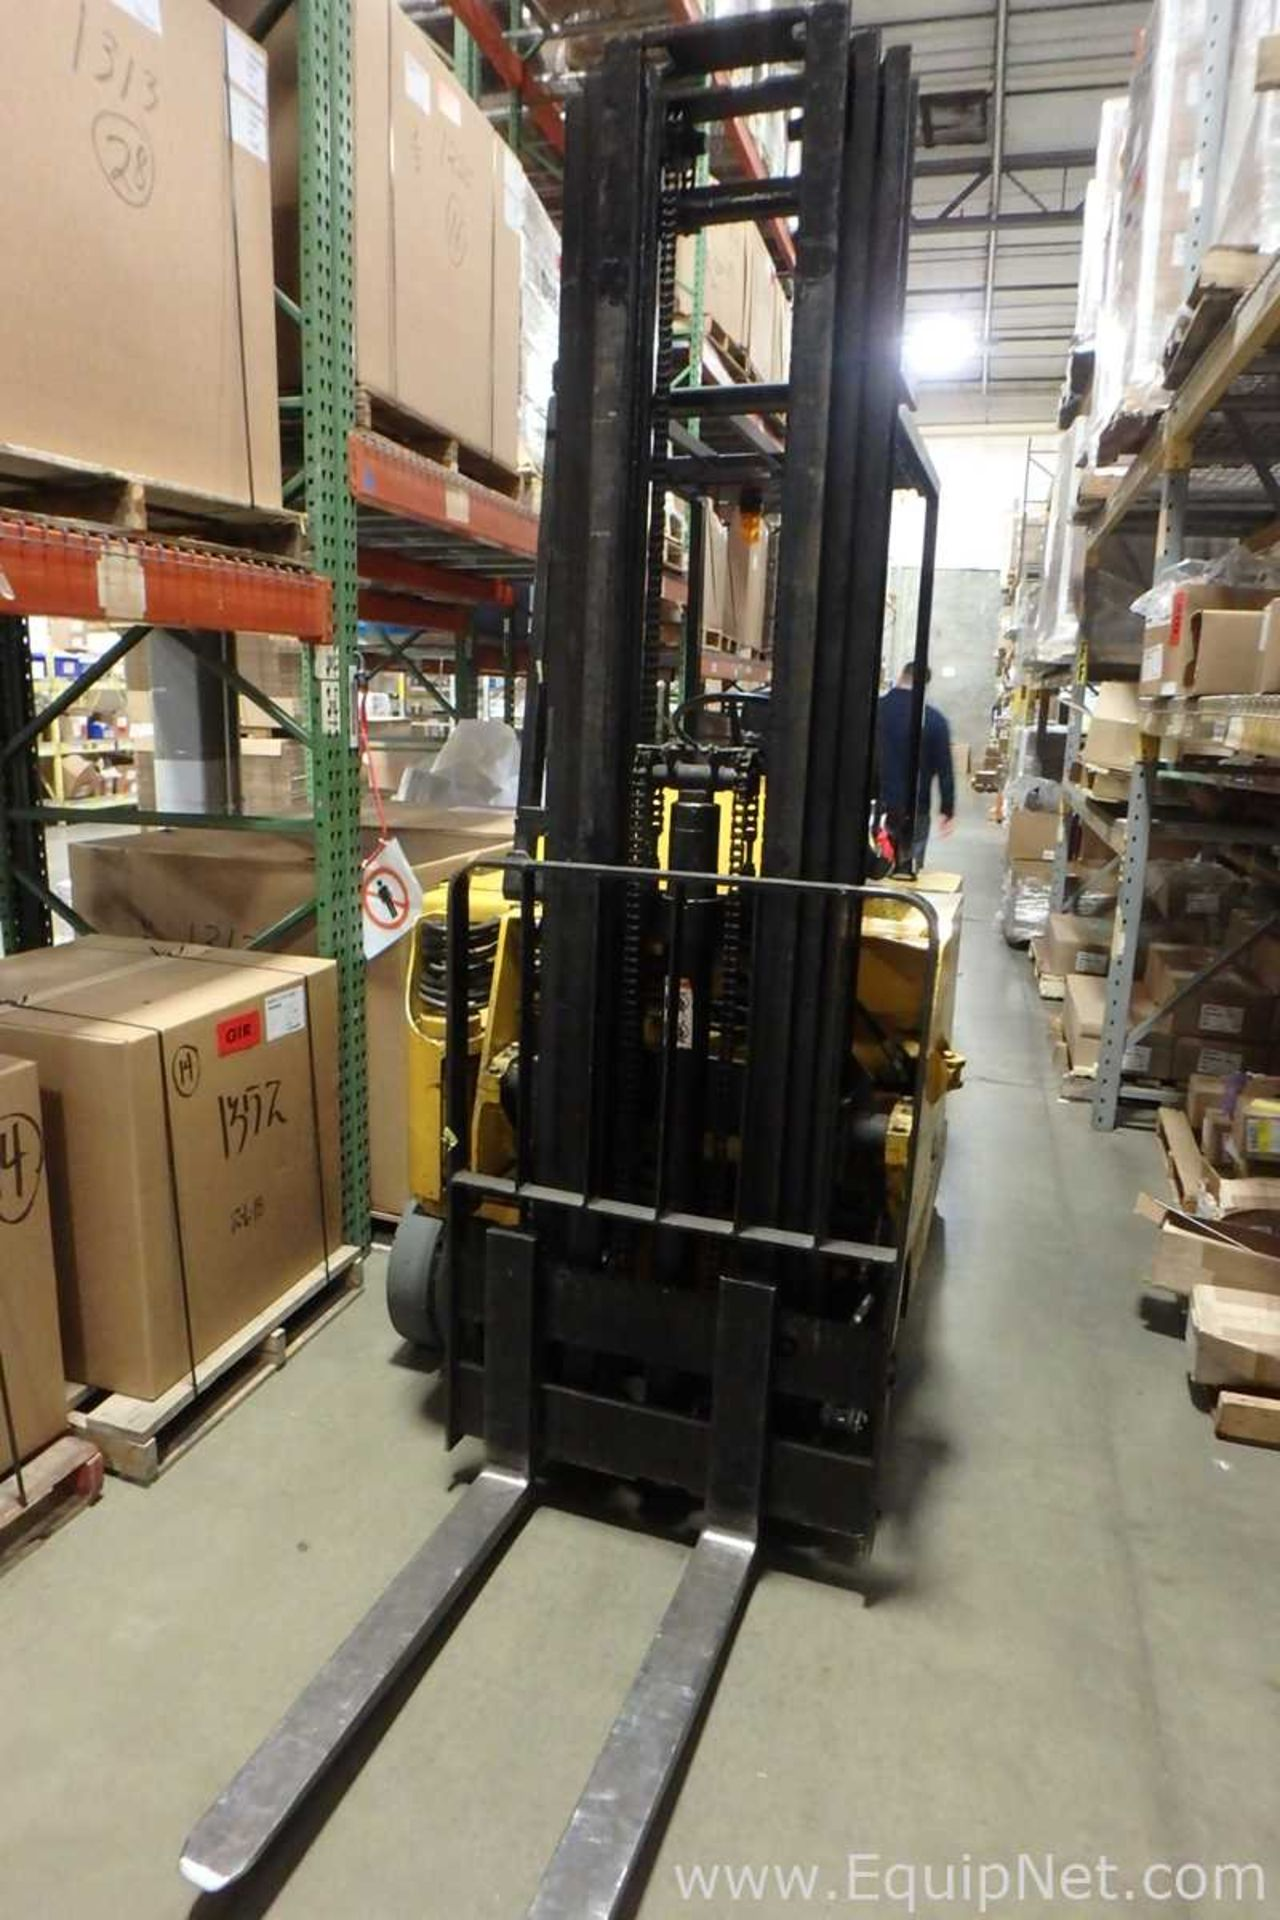 Lot 51 - Drexel SLT30 Battery Operated Narrow Aisle Sit-Down Fork Lift